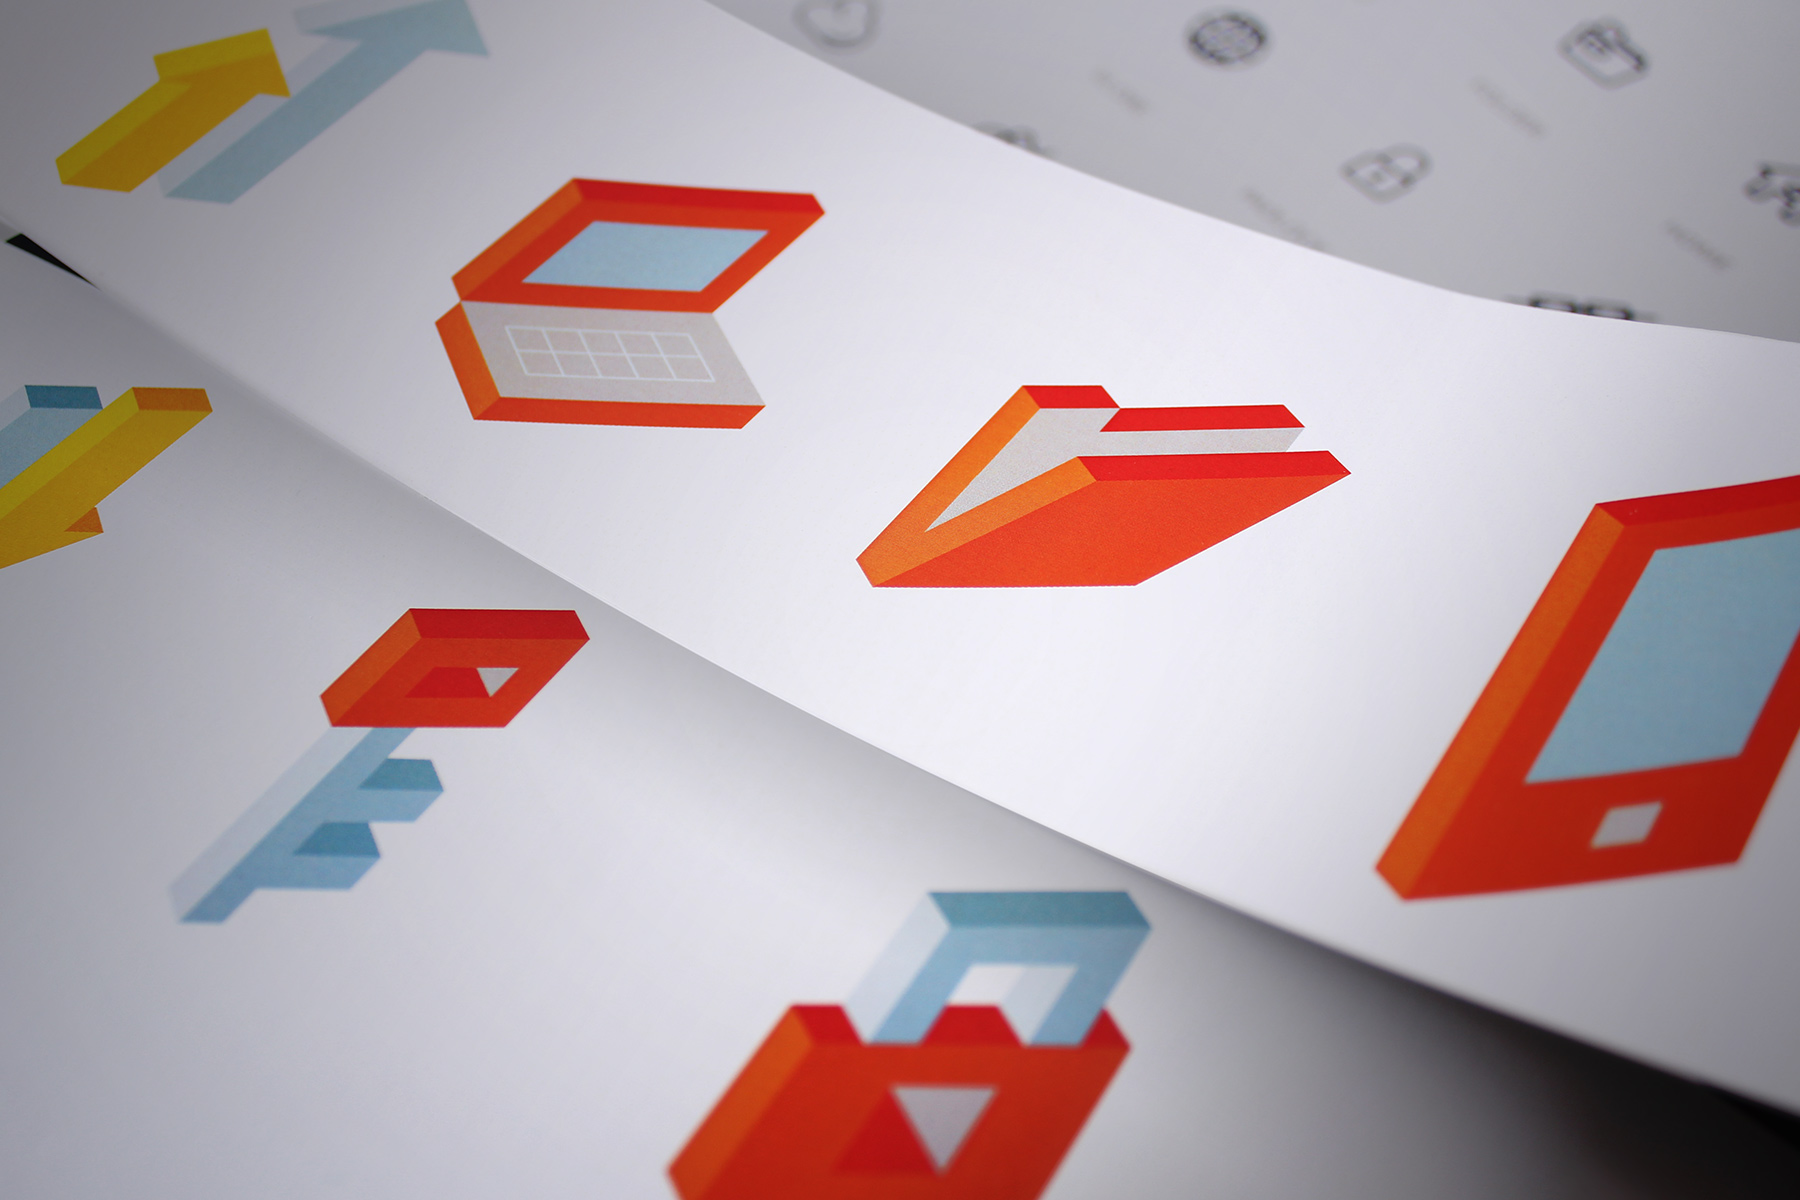 The visual identity extended across the entire brand. We developed a custom toolkit of infographics which would be used in communications.